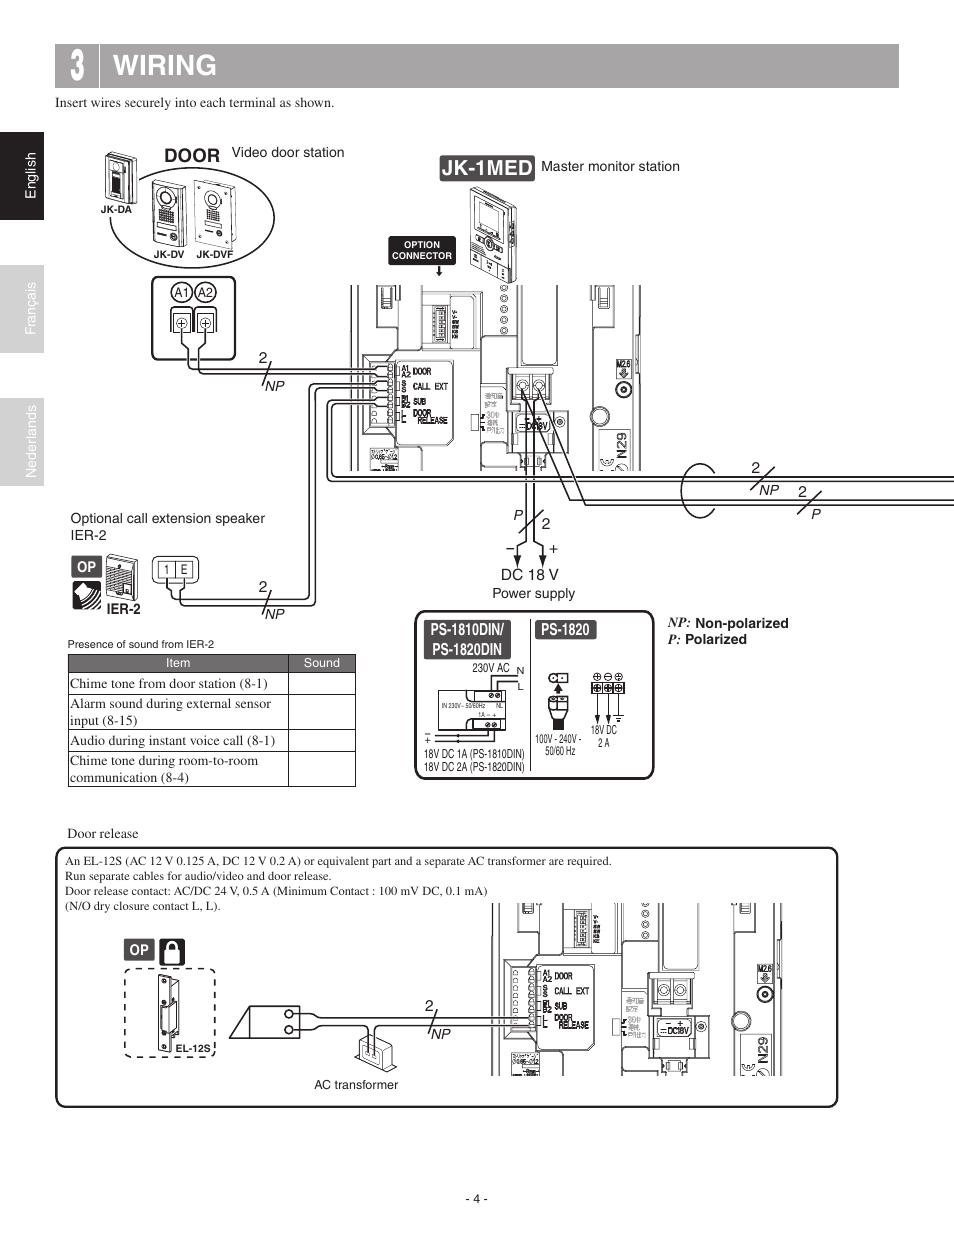 aiphone inte systems wiring diagram